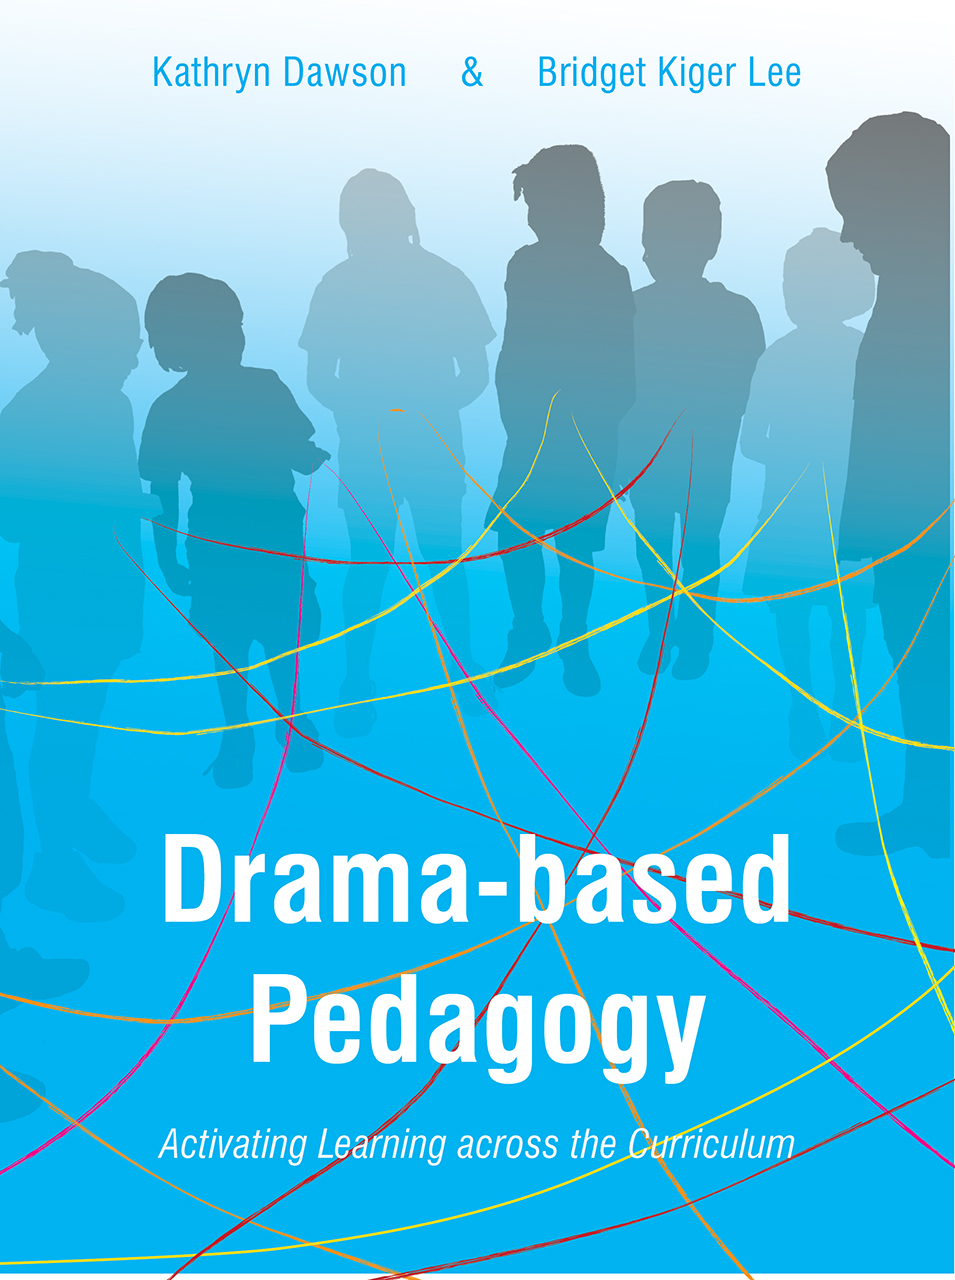 Drama-based Pedagogy: Activating Learning Across the Curriculum